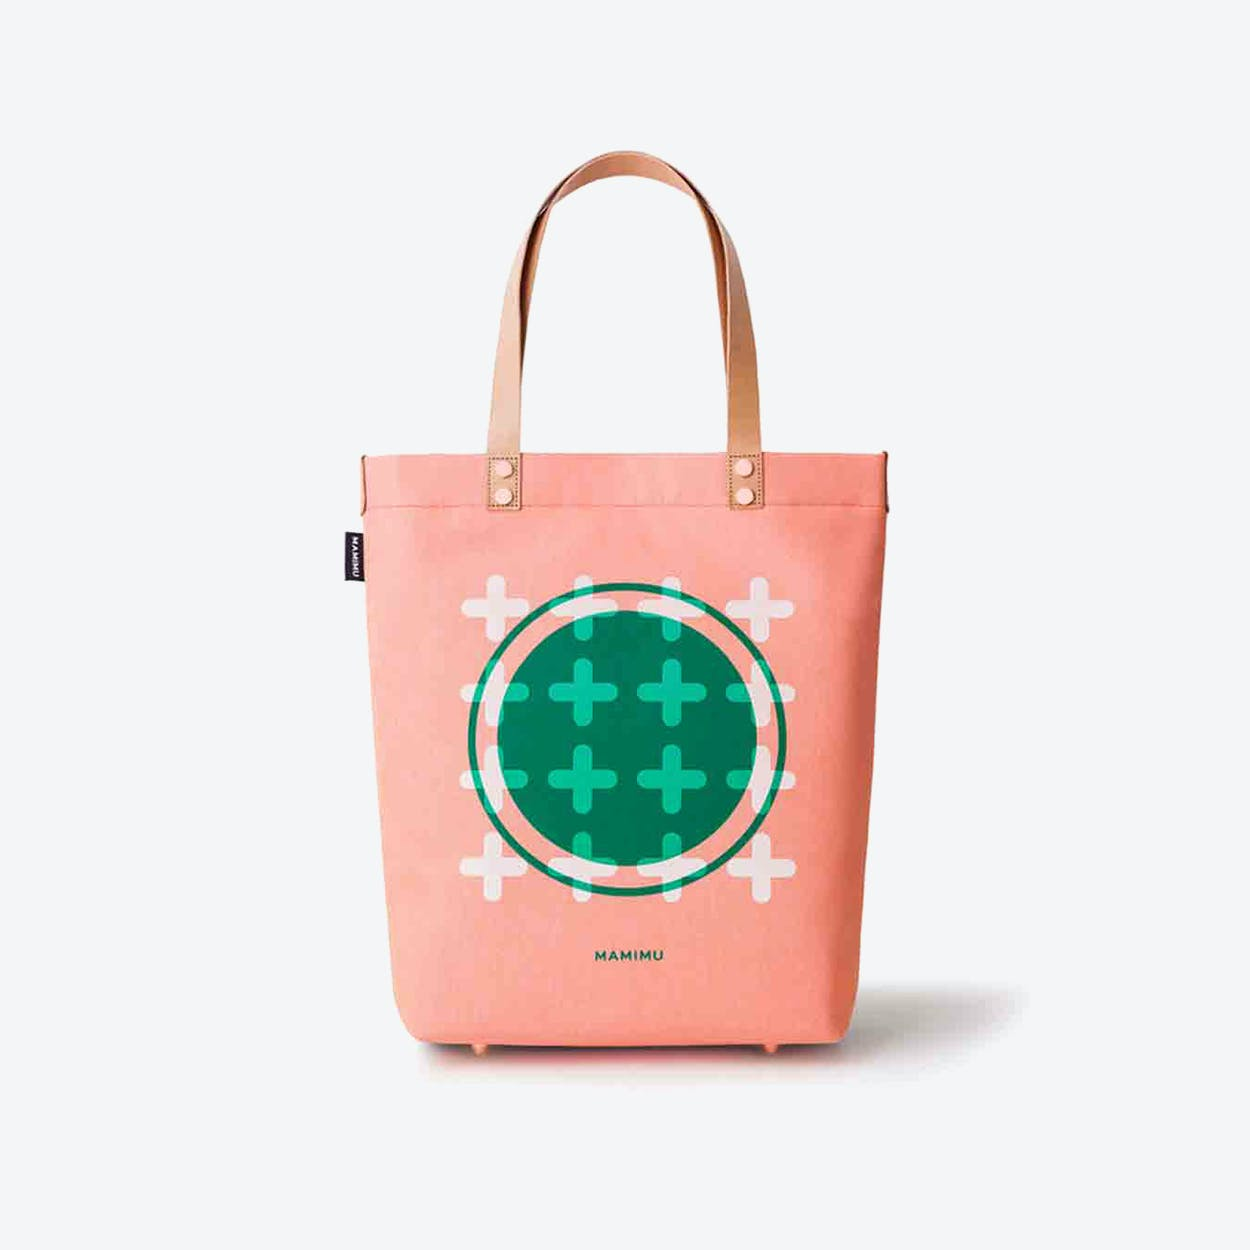 City Tote Laptop Bag: London